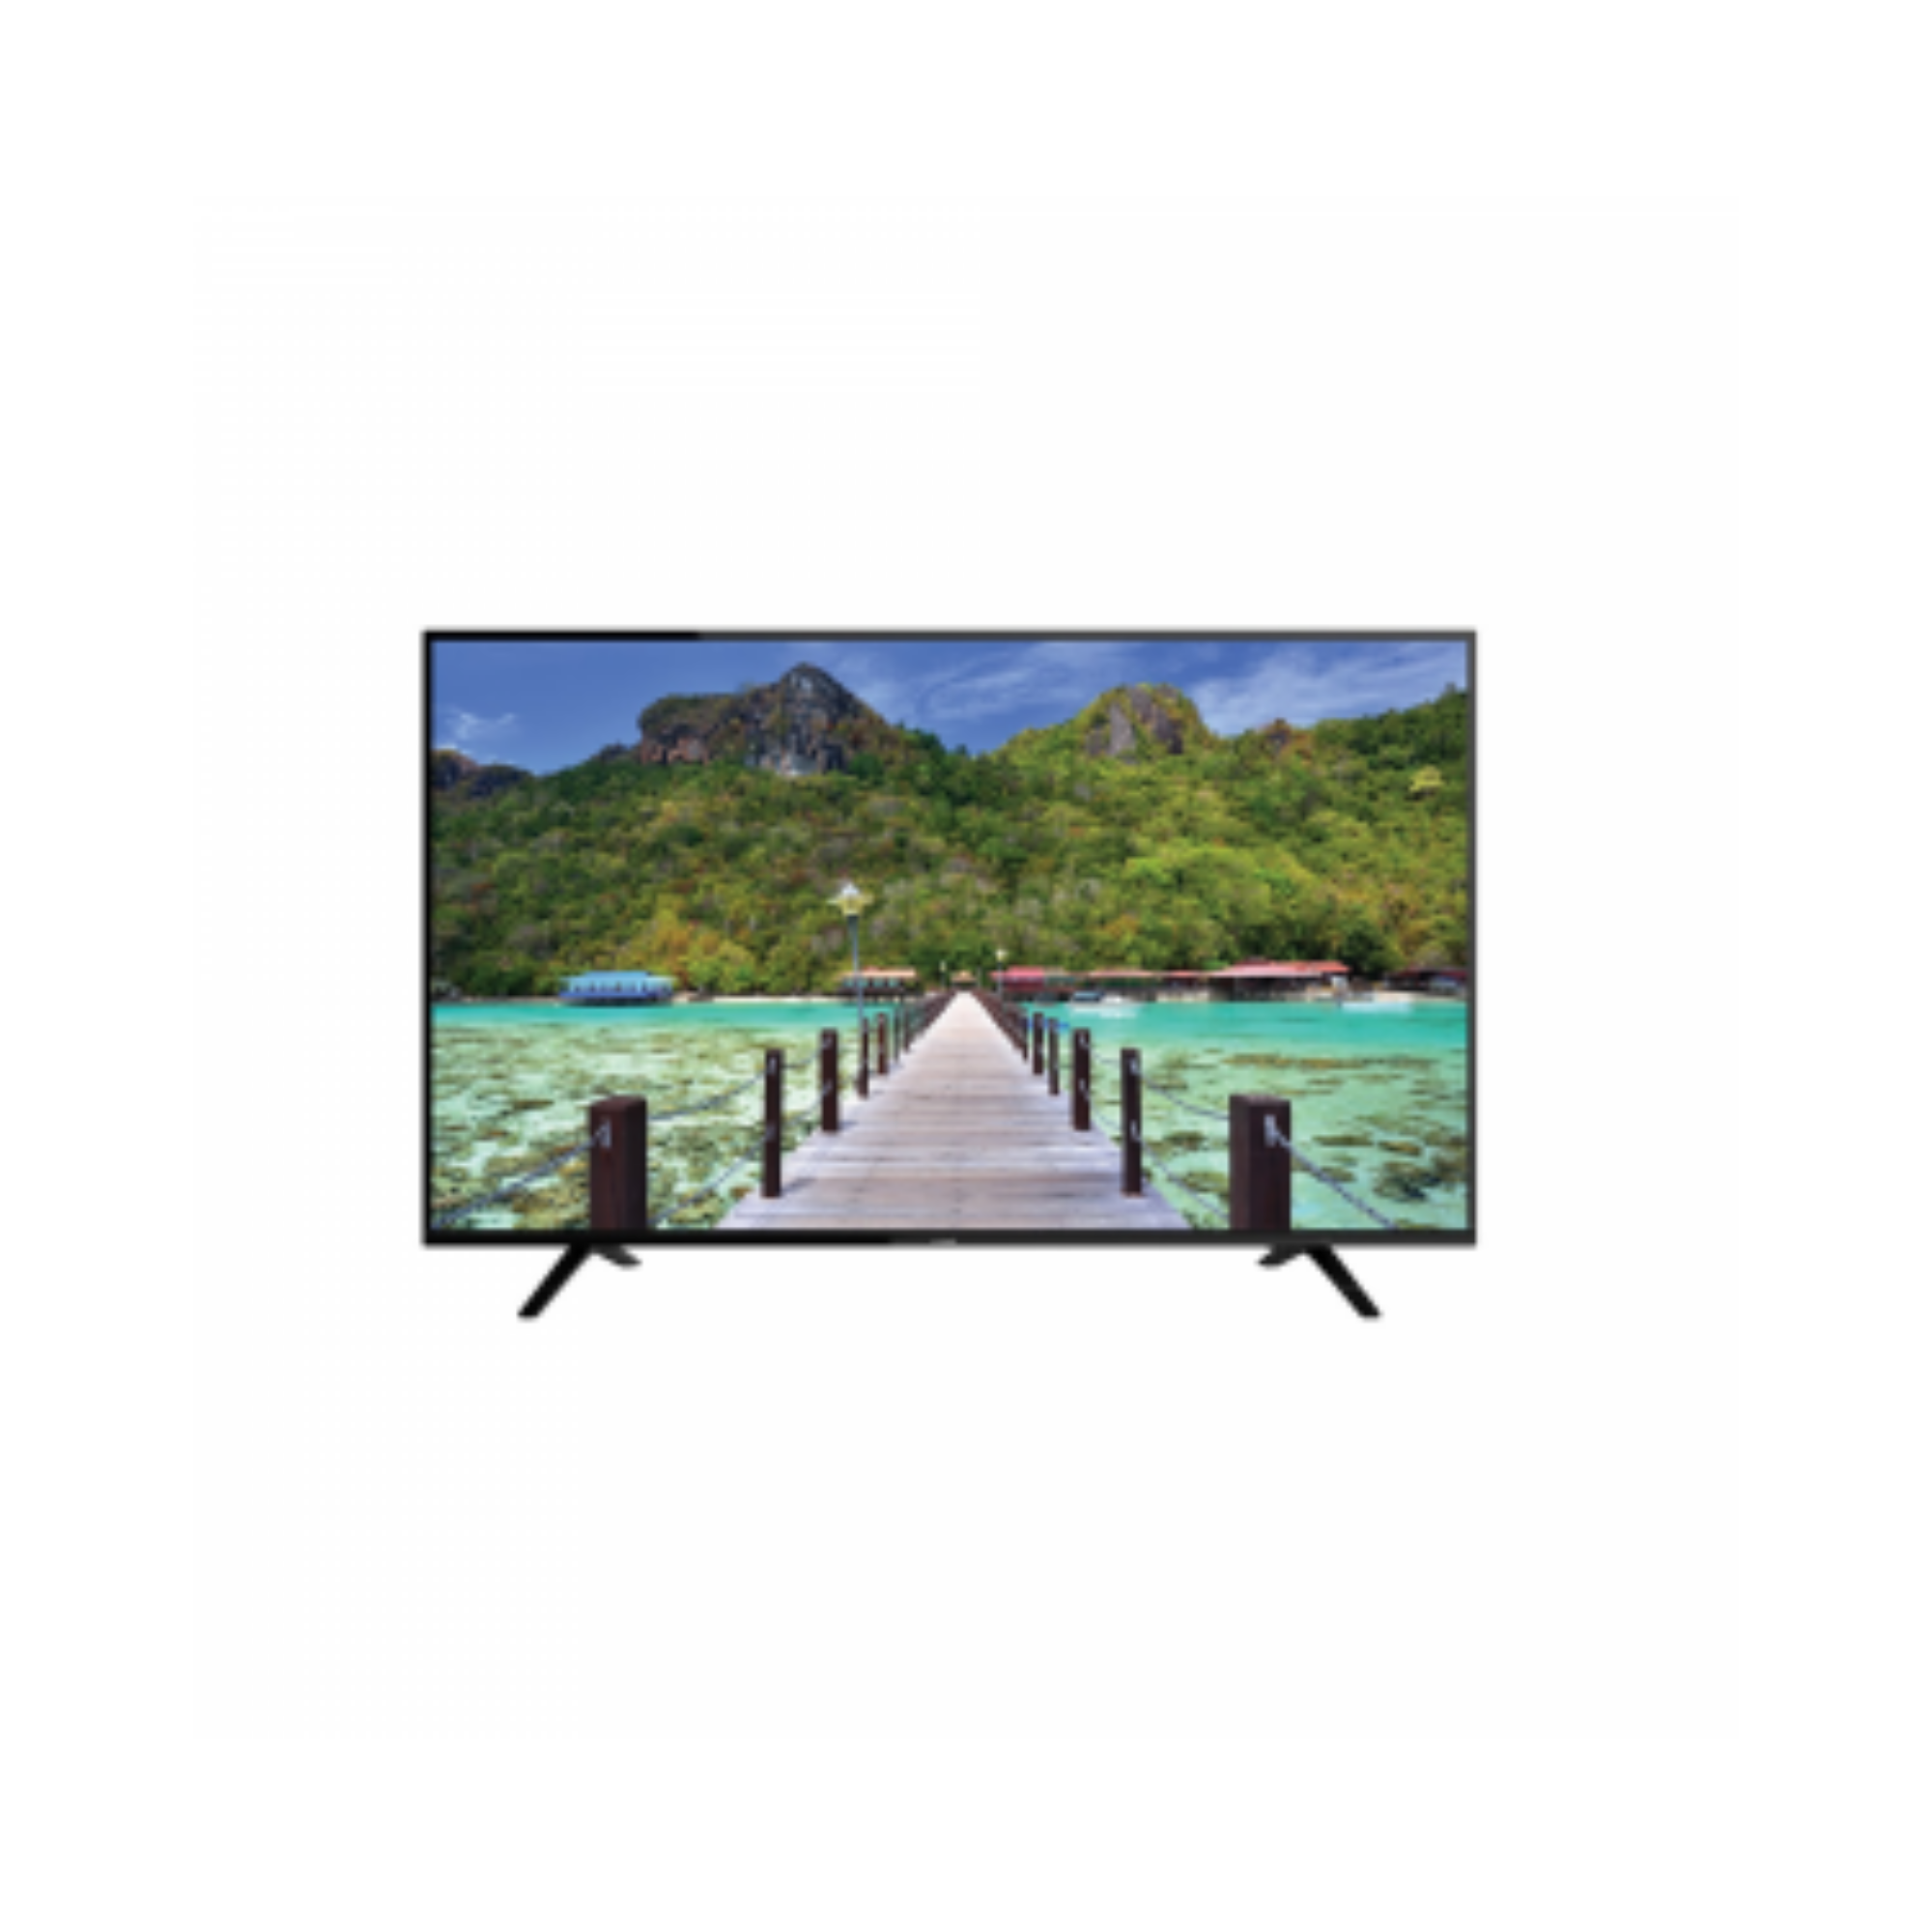 Lloyd L43U2A0KA 43 inch 4K (Ultra HD) Smart LED TV